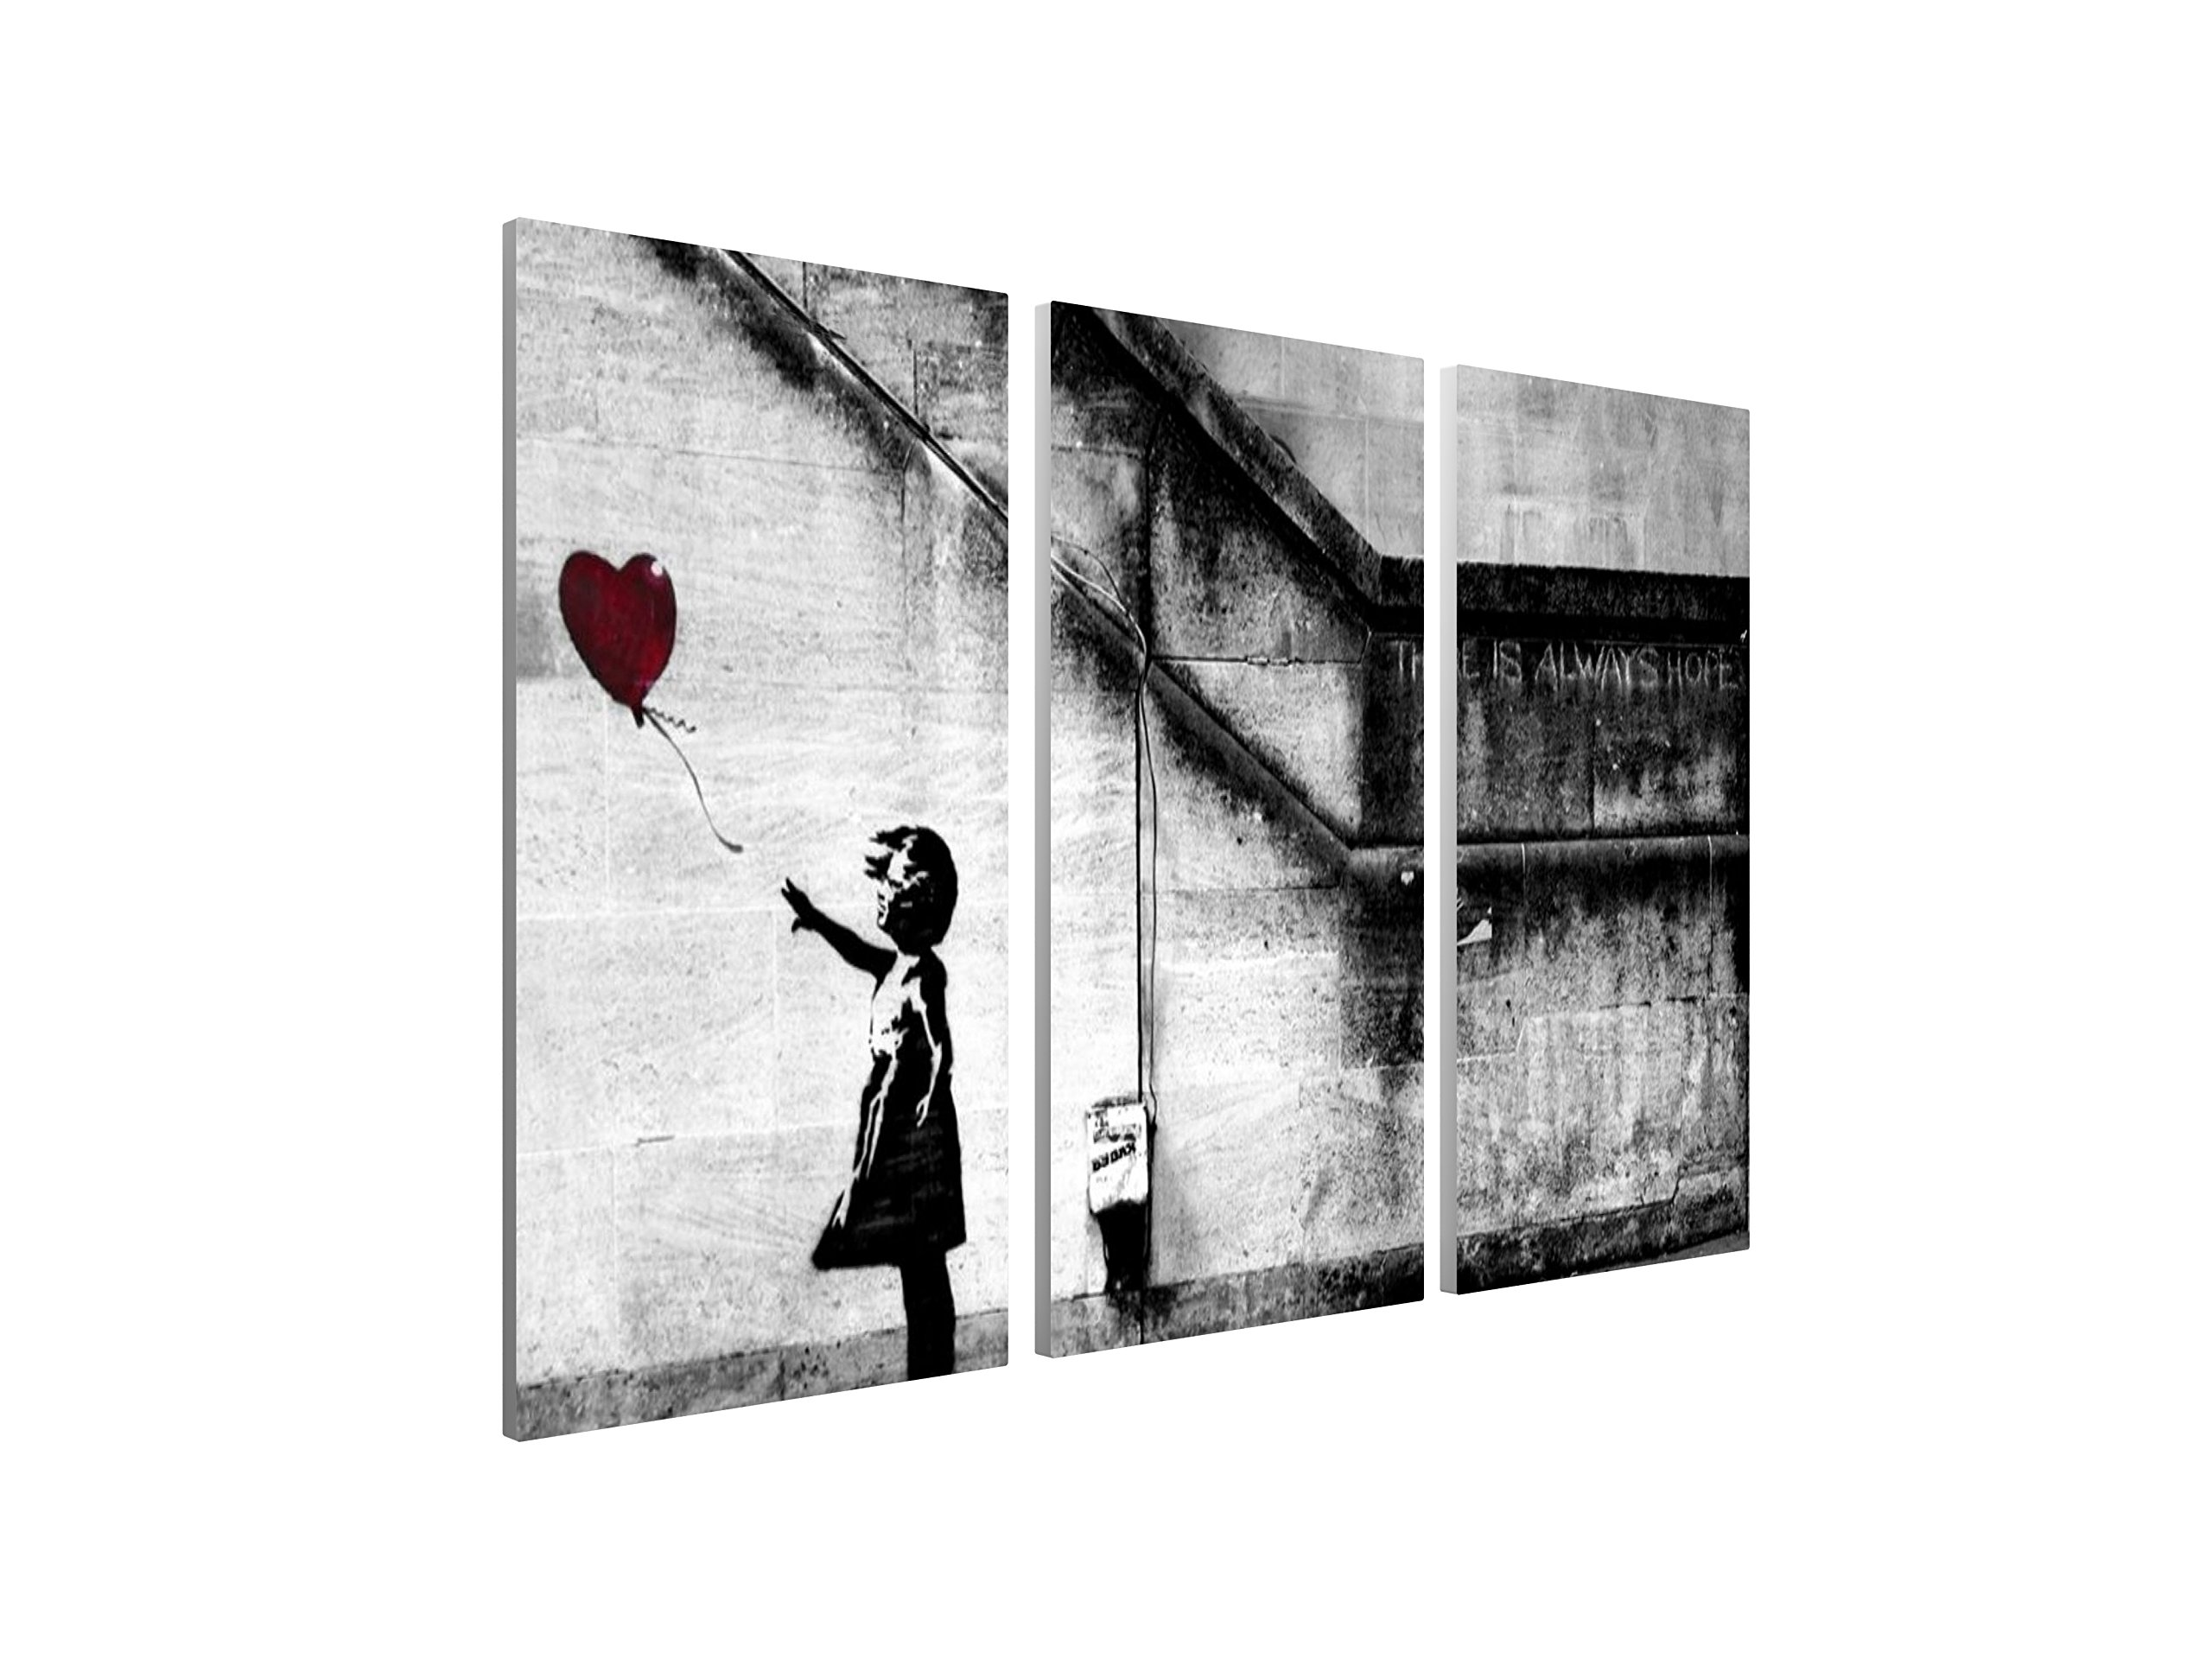 Pingo World 0121PUW827A ''Banksy Girl with Balloon (There is Always Hope)'' Gallery Wrapped Triptych Canvas Wall Art, 48'' x 30'', Variable